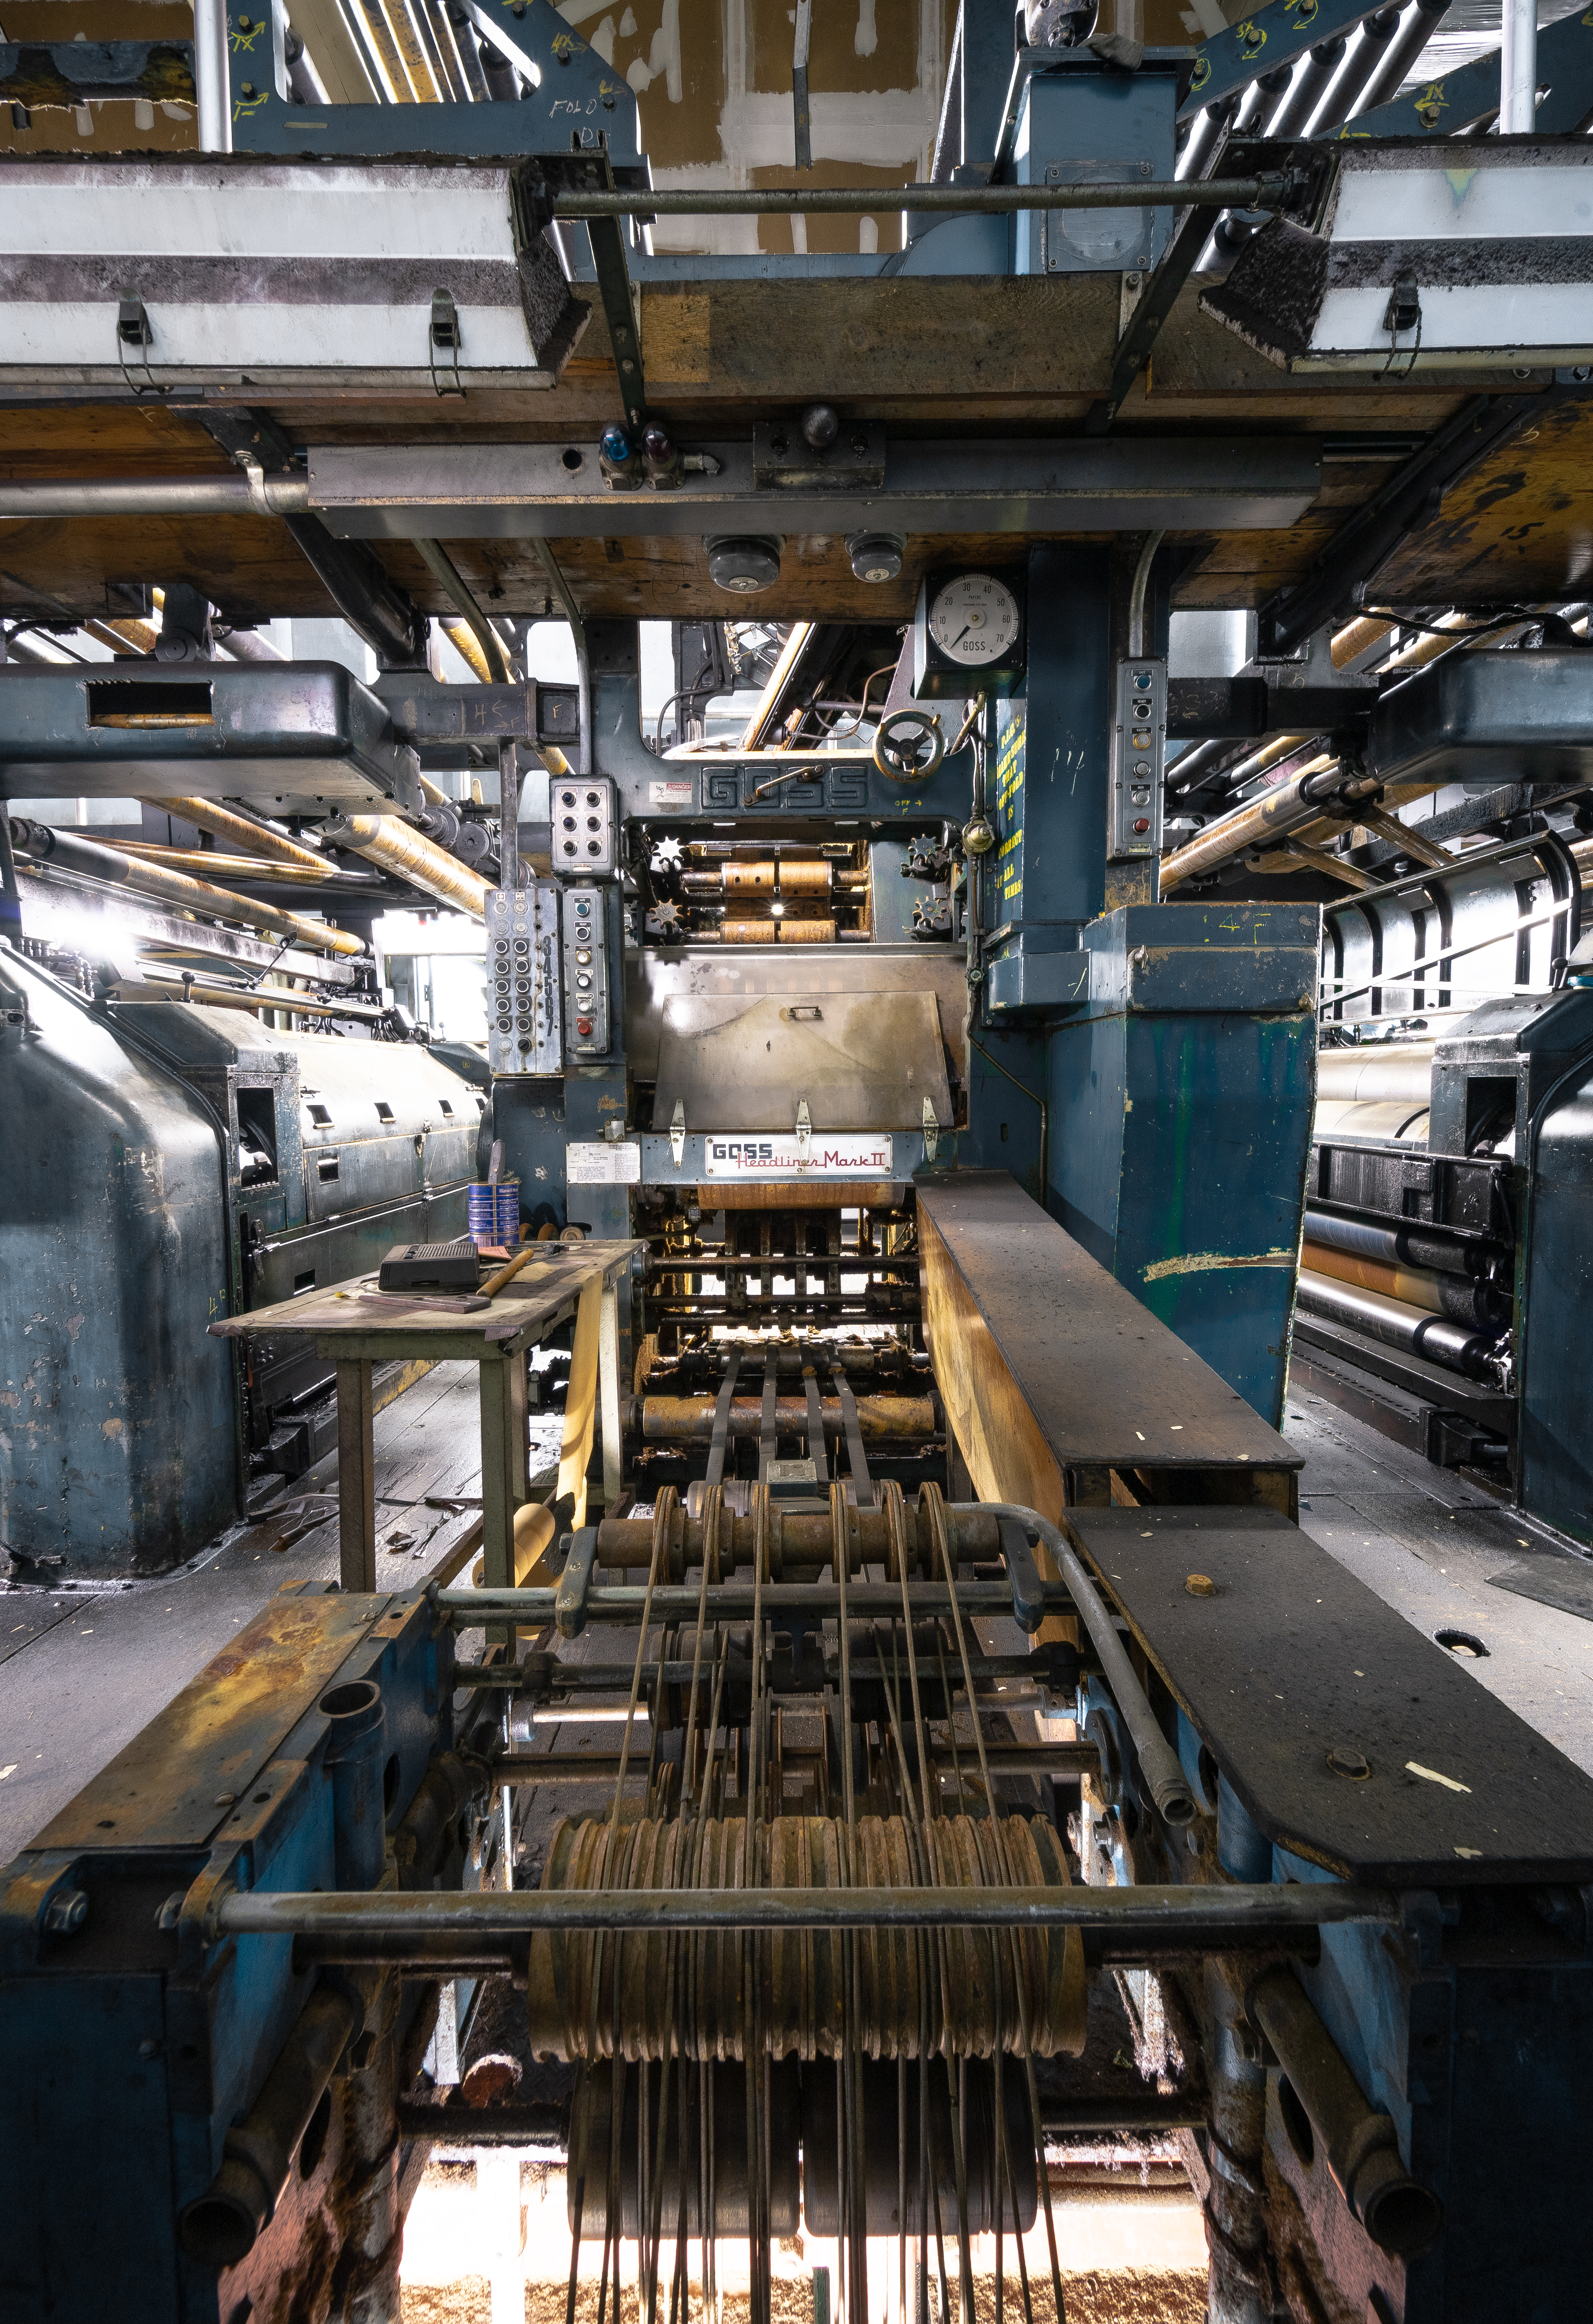 Retired ink presses that once printed the Pawtucket Times newspaper.